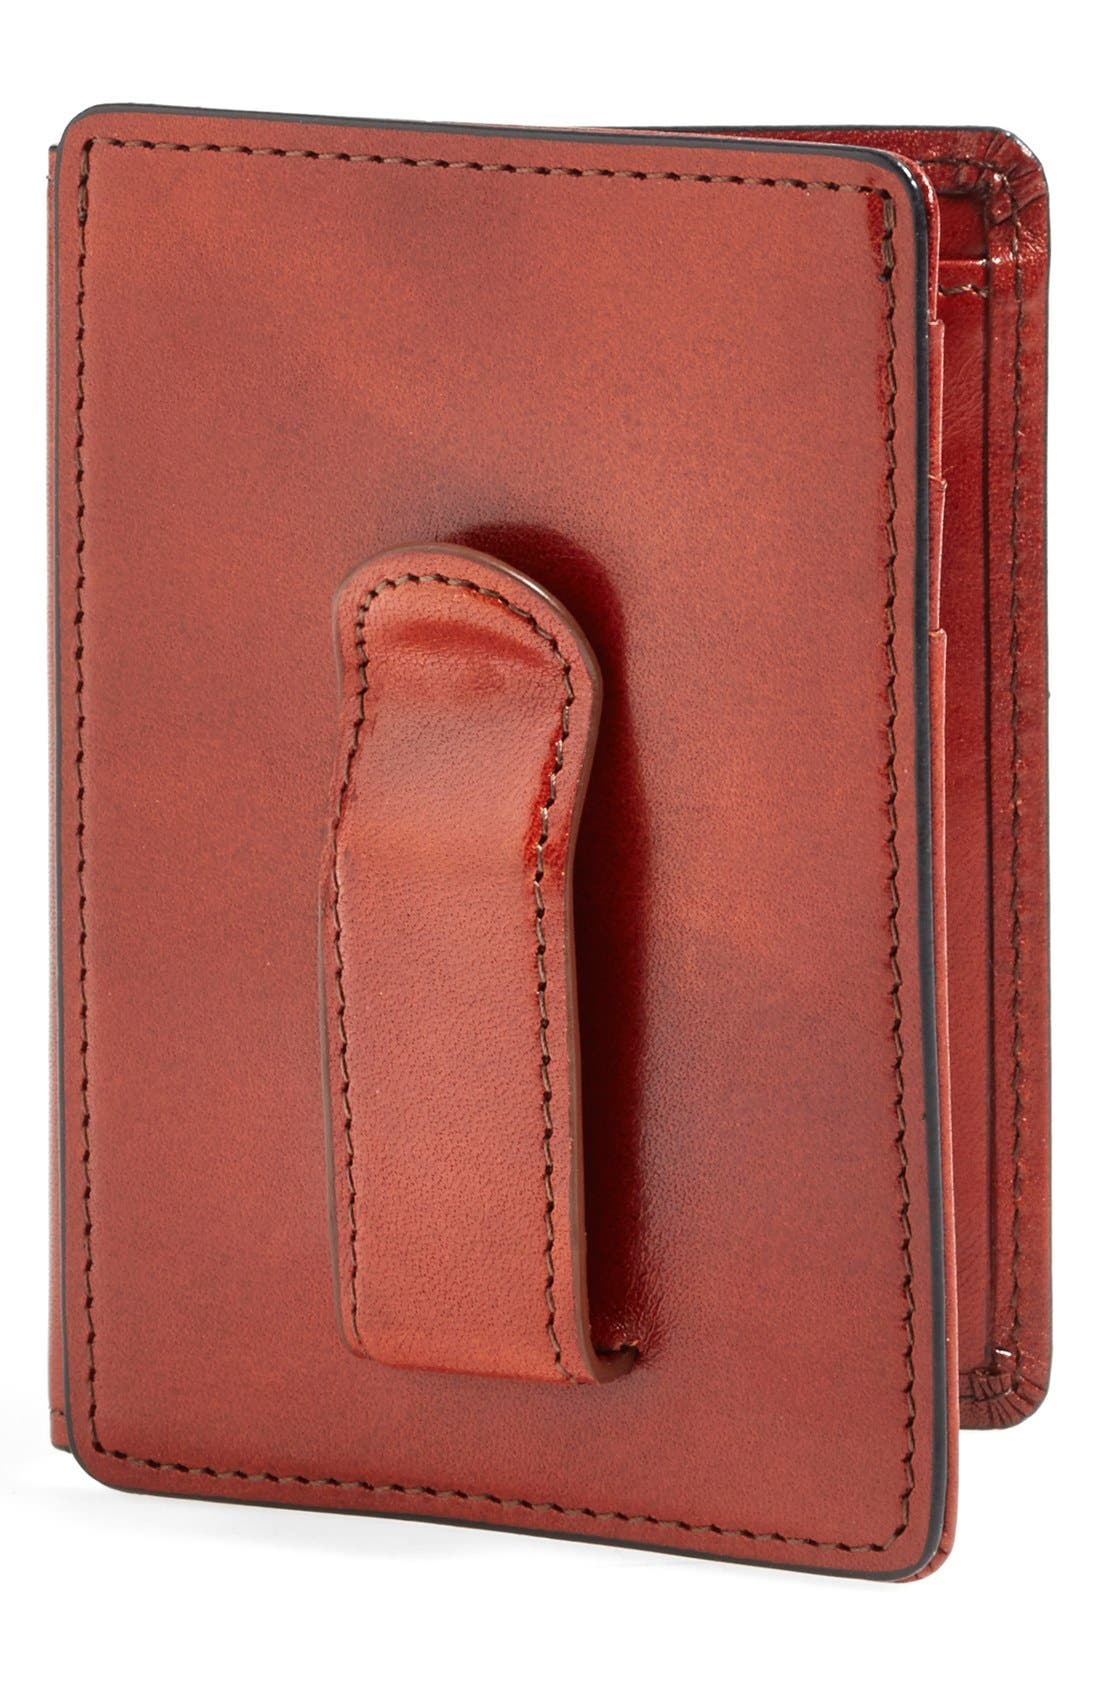 'Old Leather' Front Pocket ID Wallet,                             Main thumbnail 1, color,                             COGNAC